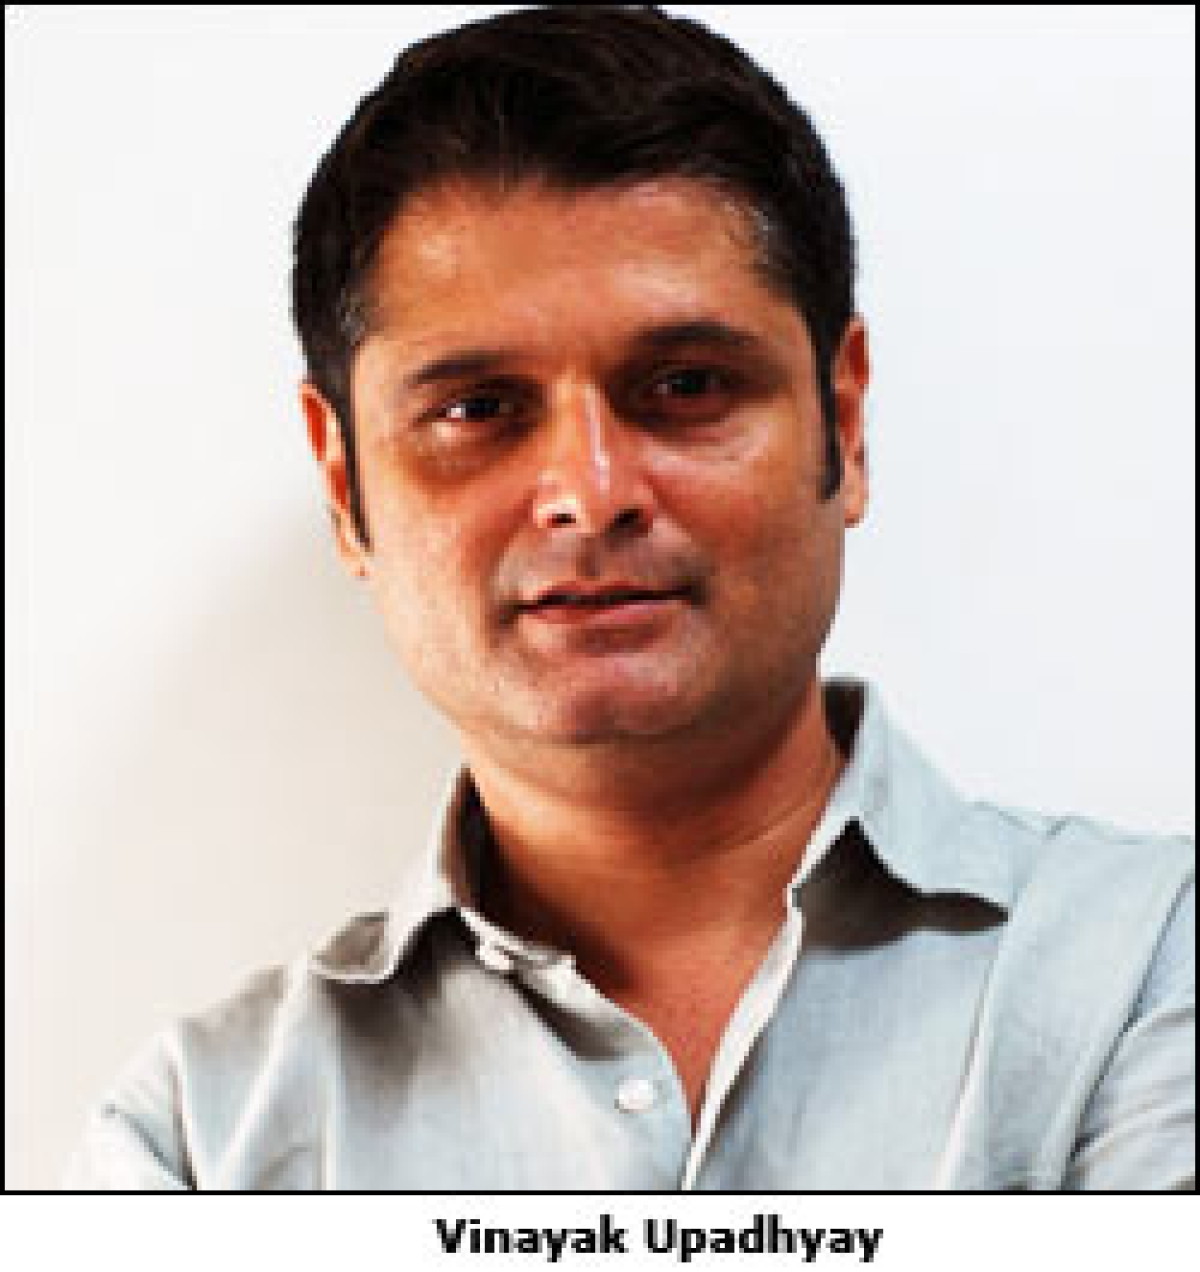 Vinayak Upadhyay of Law & Kenneth moves to Digital Law & Kenneth